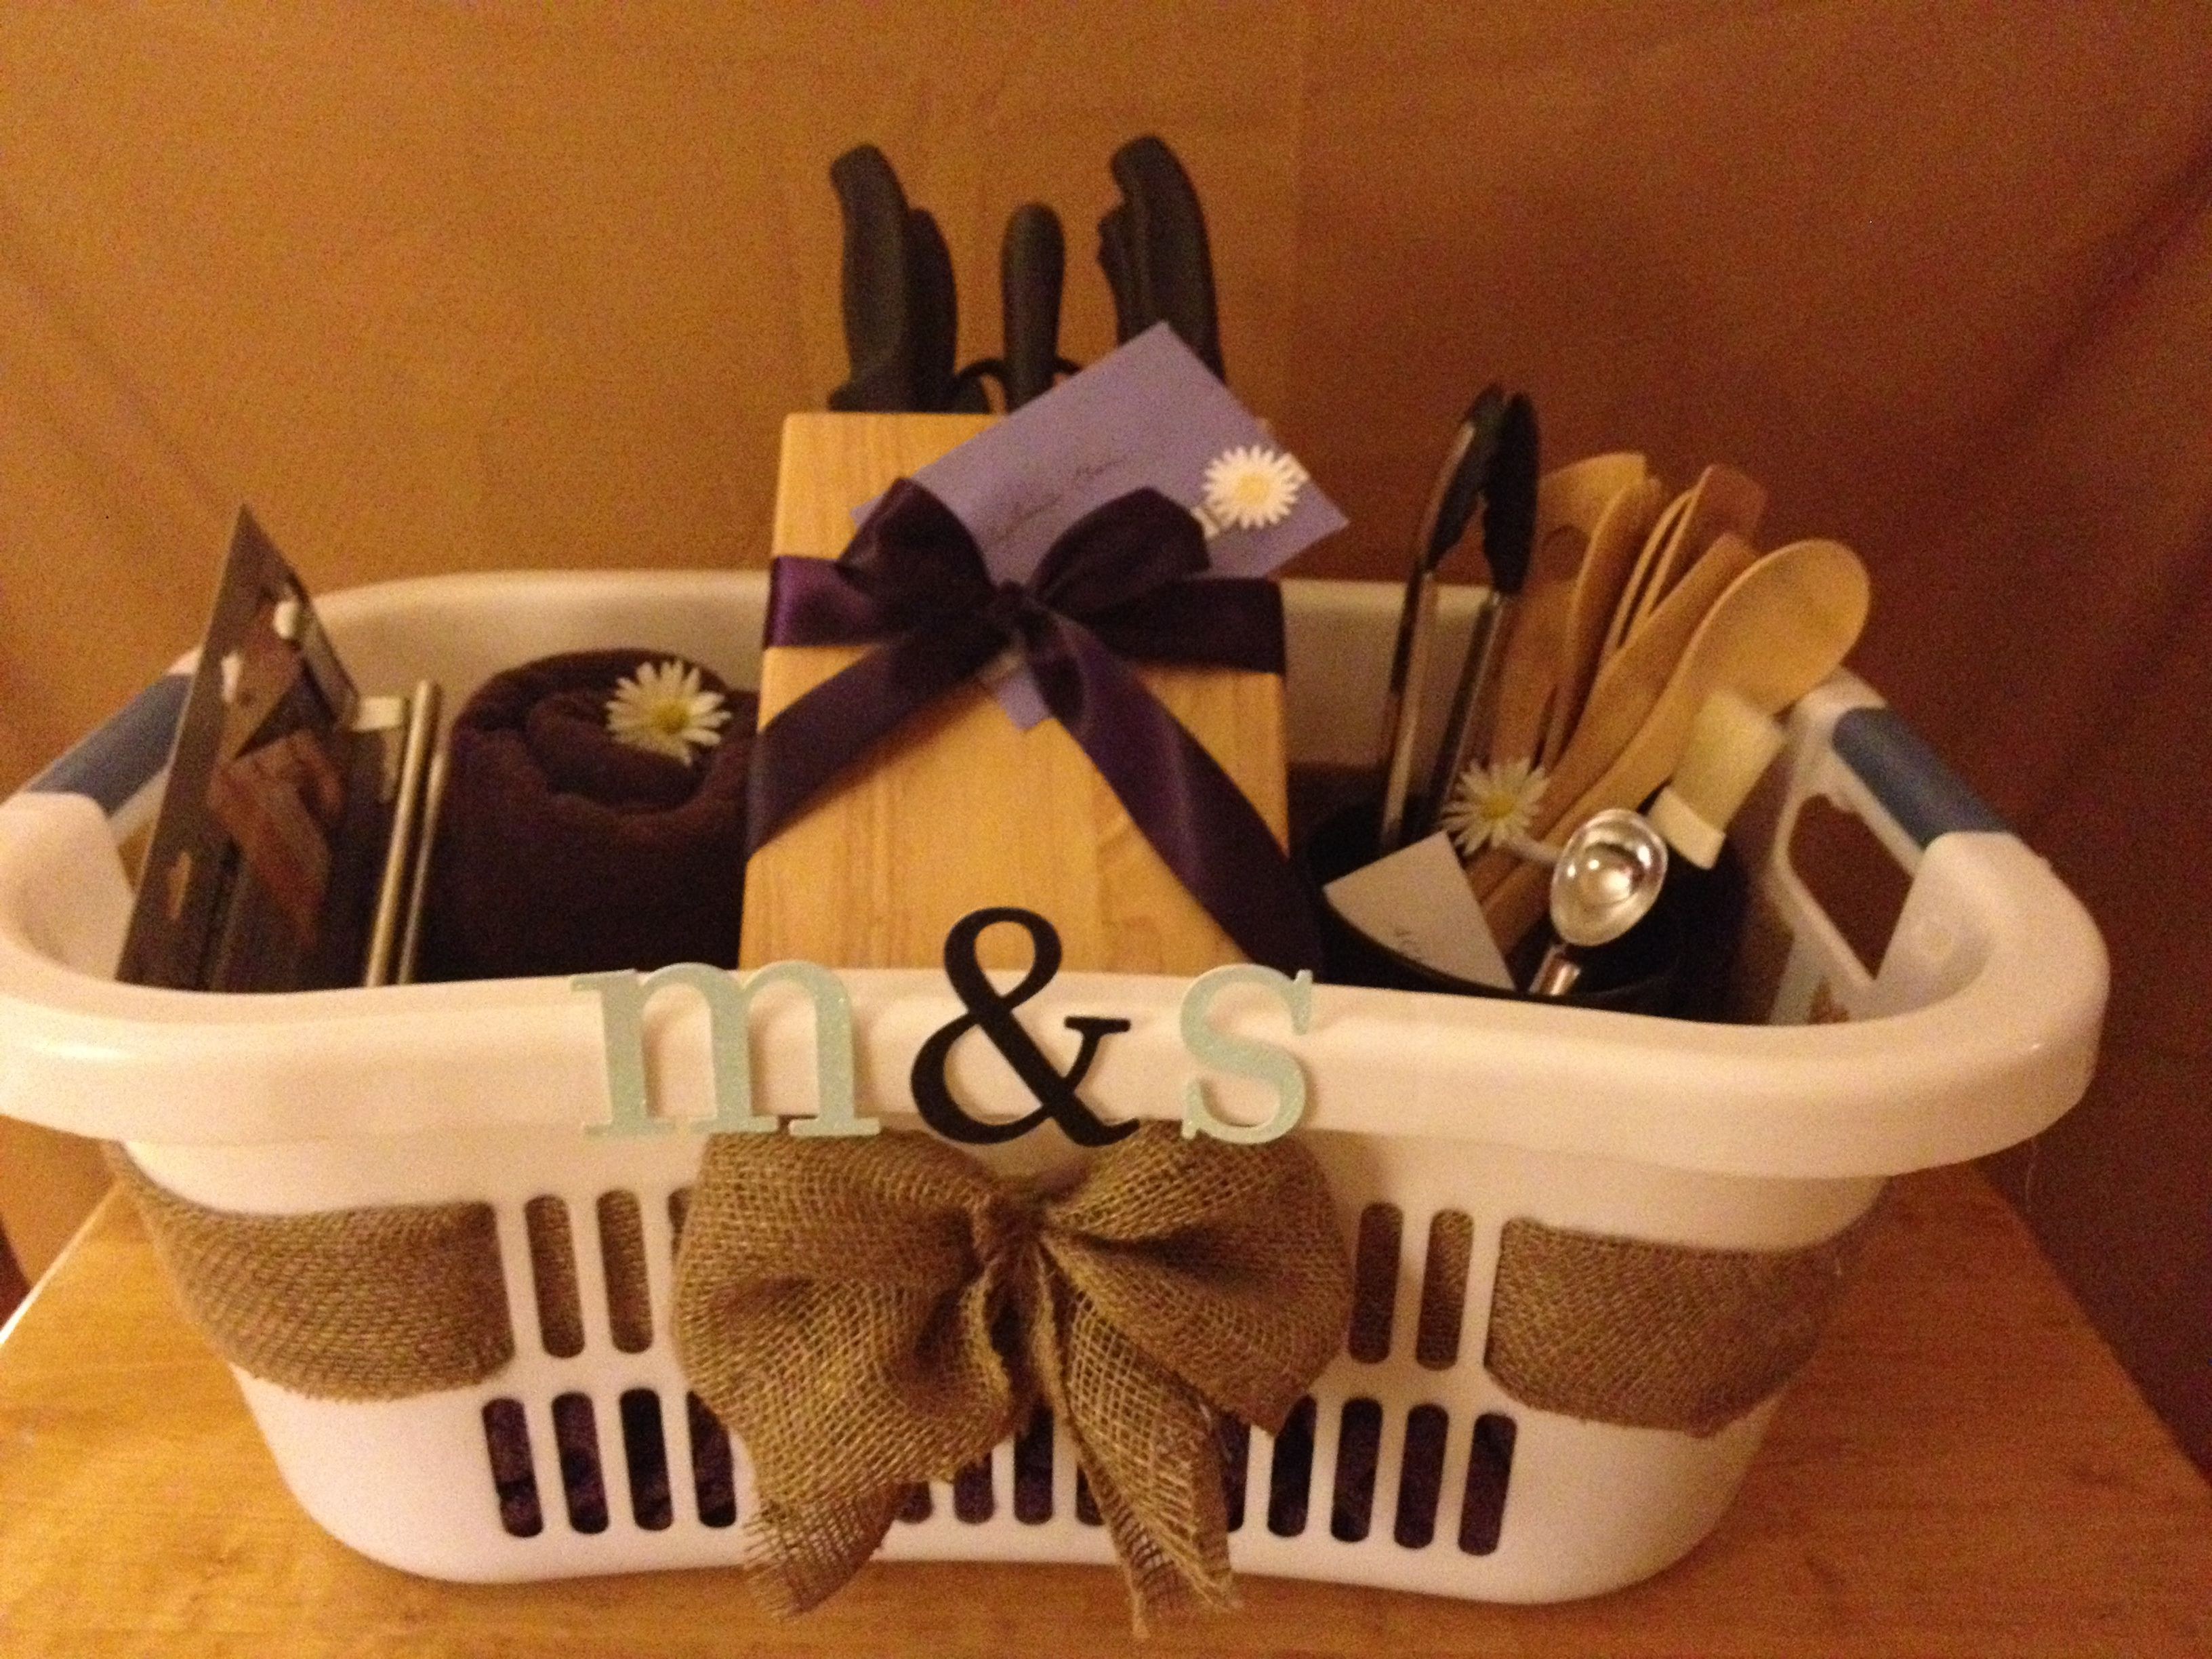 For a beautiful and personalized wedding gift order items